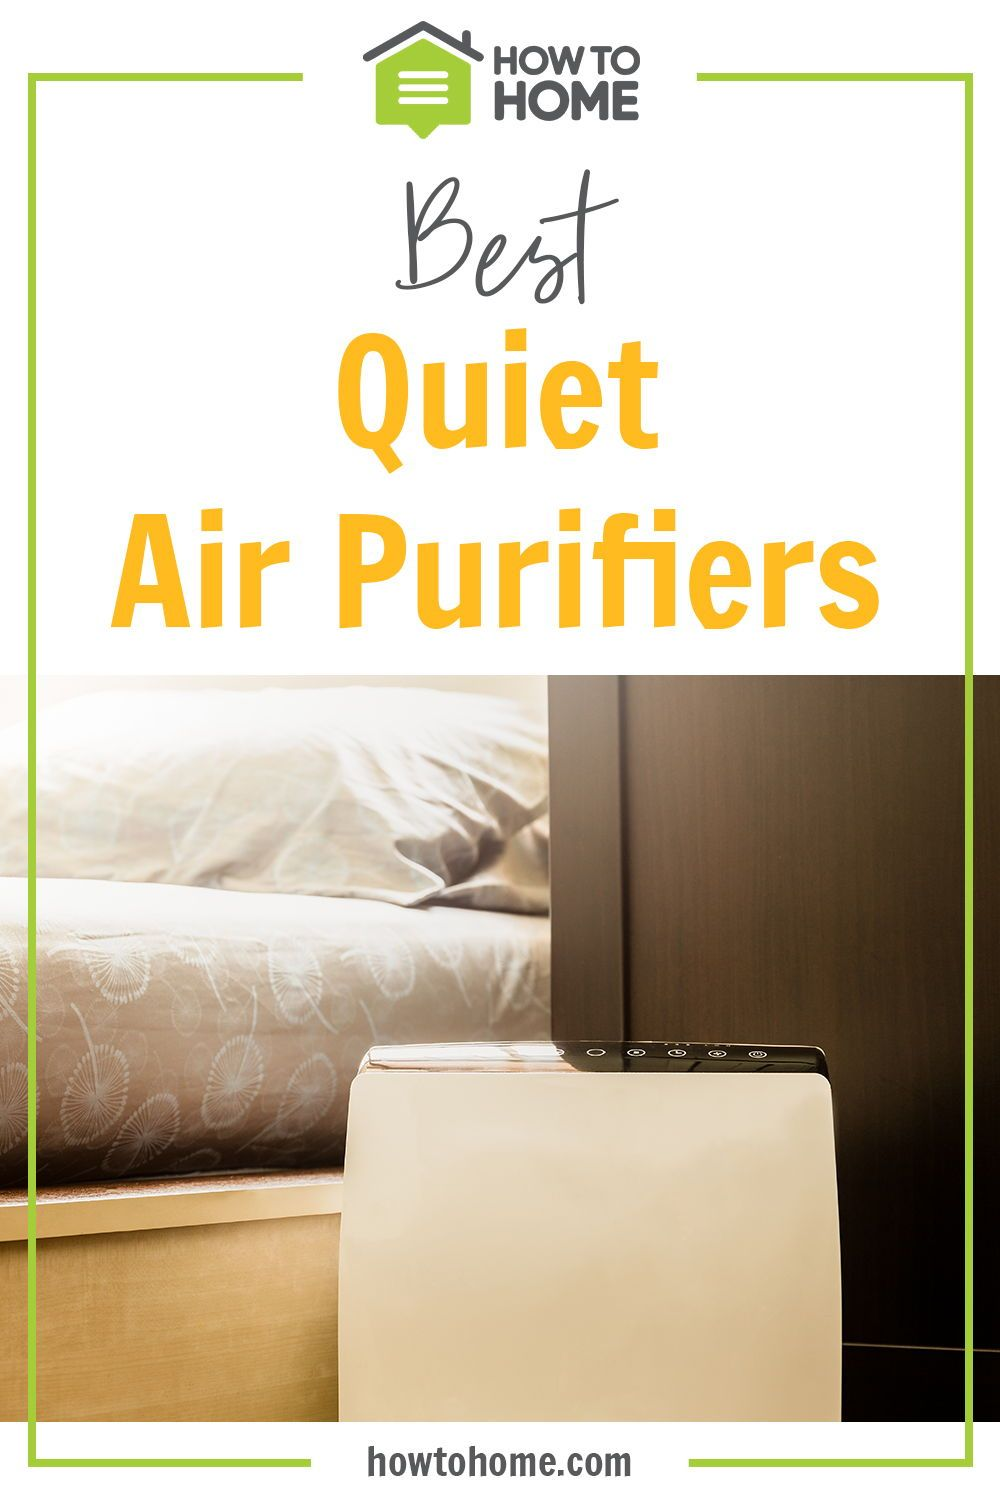 Quiet air purifiers are ideal for minimizing noise